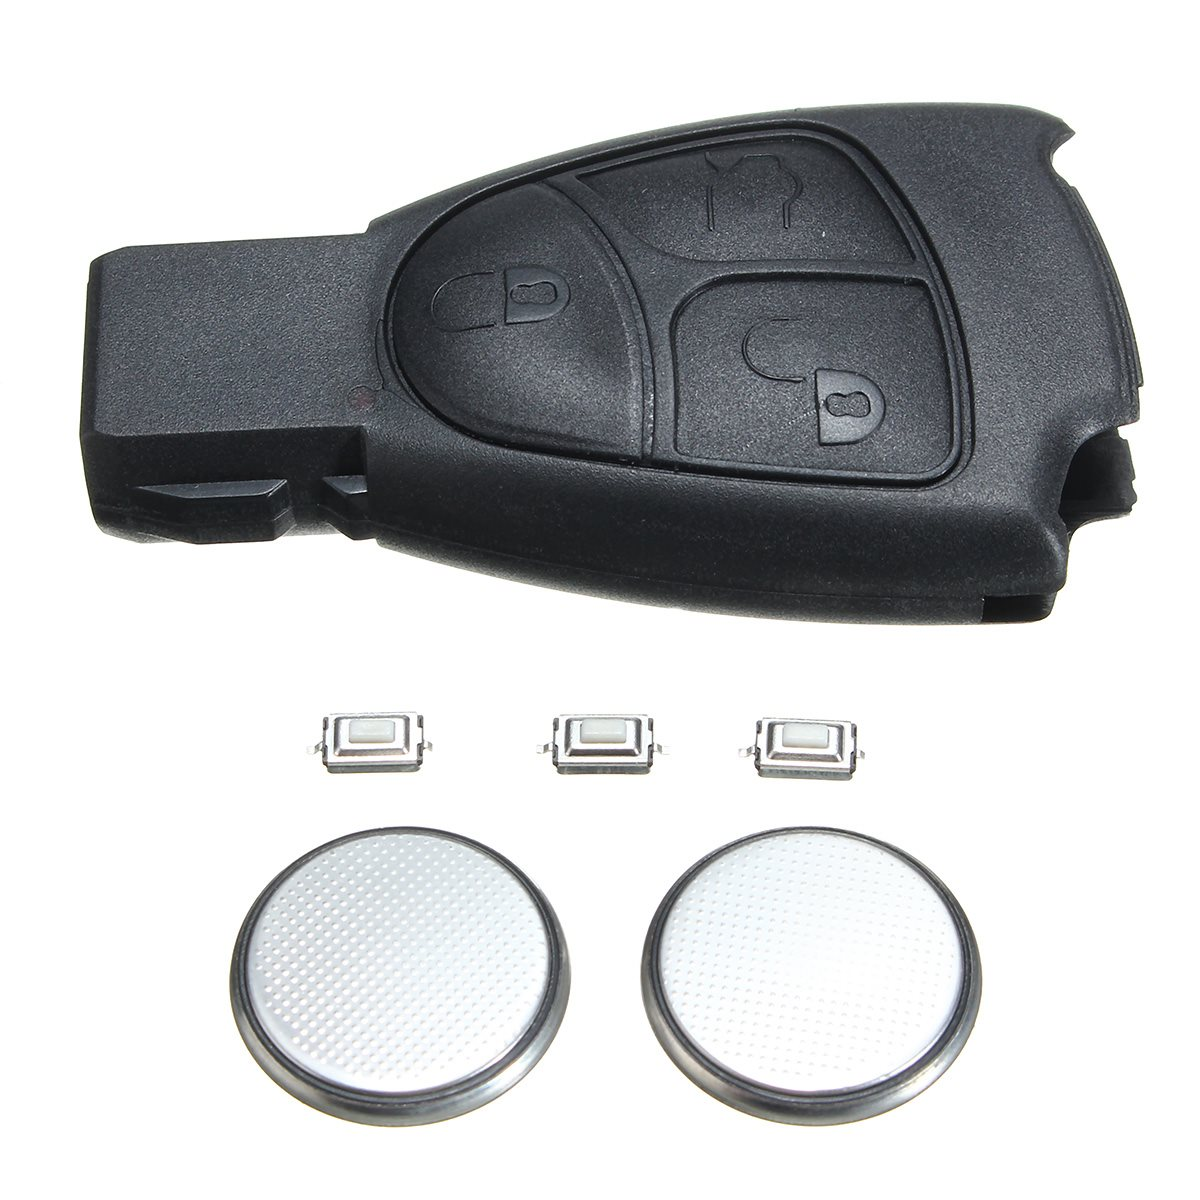 3 Buttons Remote Key Fob Case Repair Kit For Mercedes-Benz E S C CLK CL ML CLS SLK 1998 2001-2007 Black